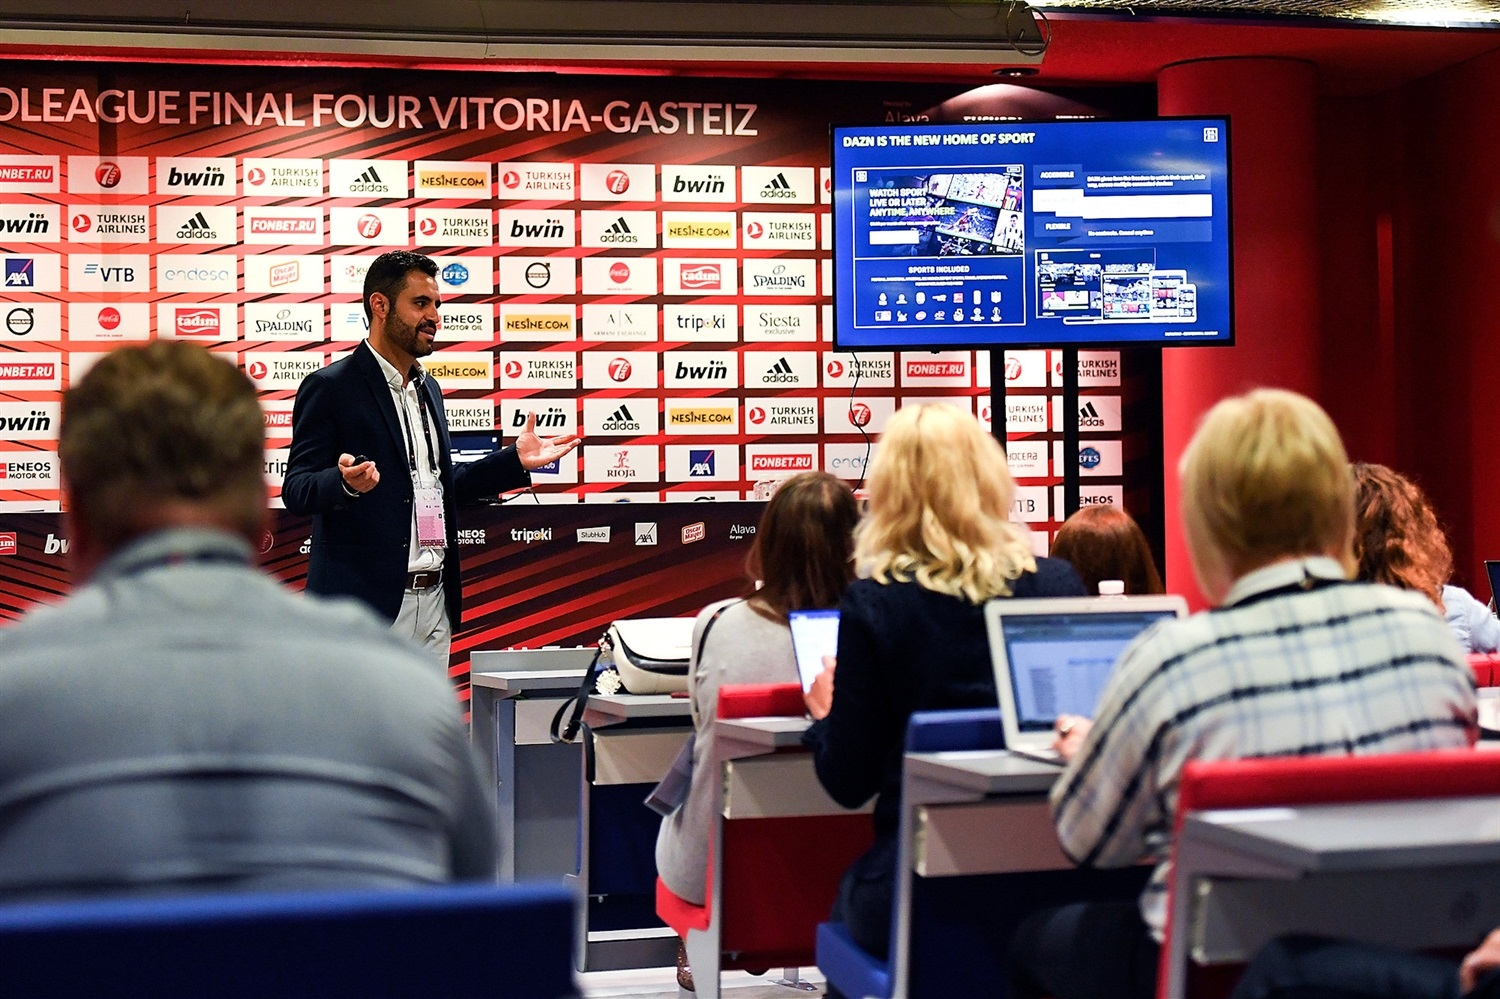 Inaki Sanchez - Sports Business MBA by EB Institute - Final Four Vitoria-Gasteiz 2019 - EB18